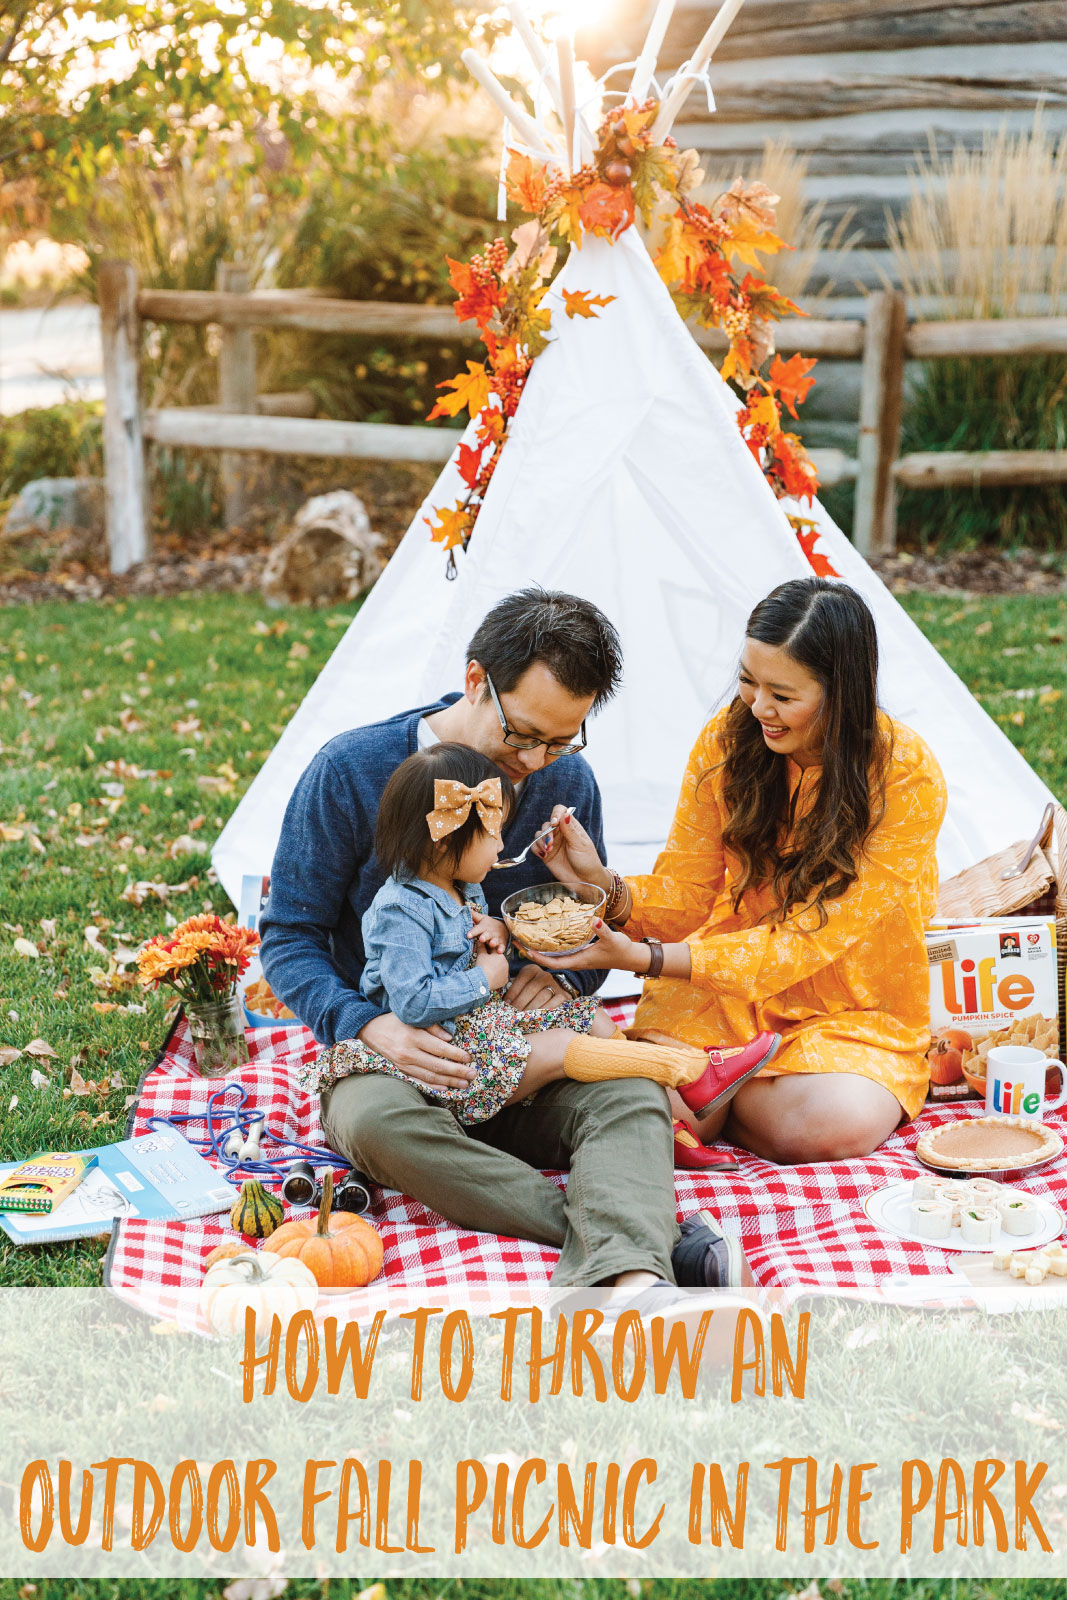 How To Throw An Outdoor Fall Picnic In The Park